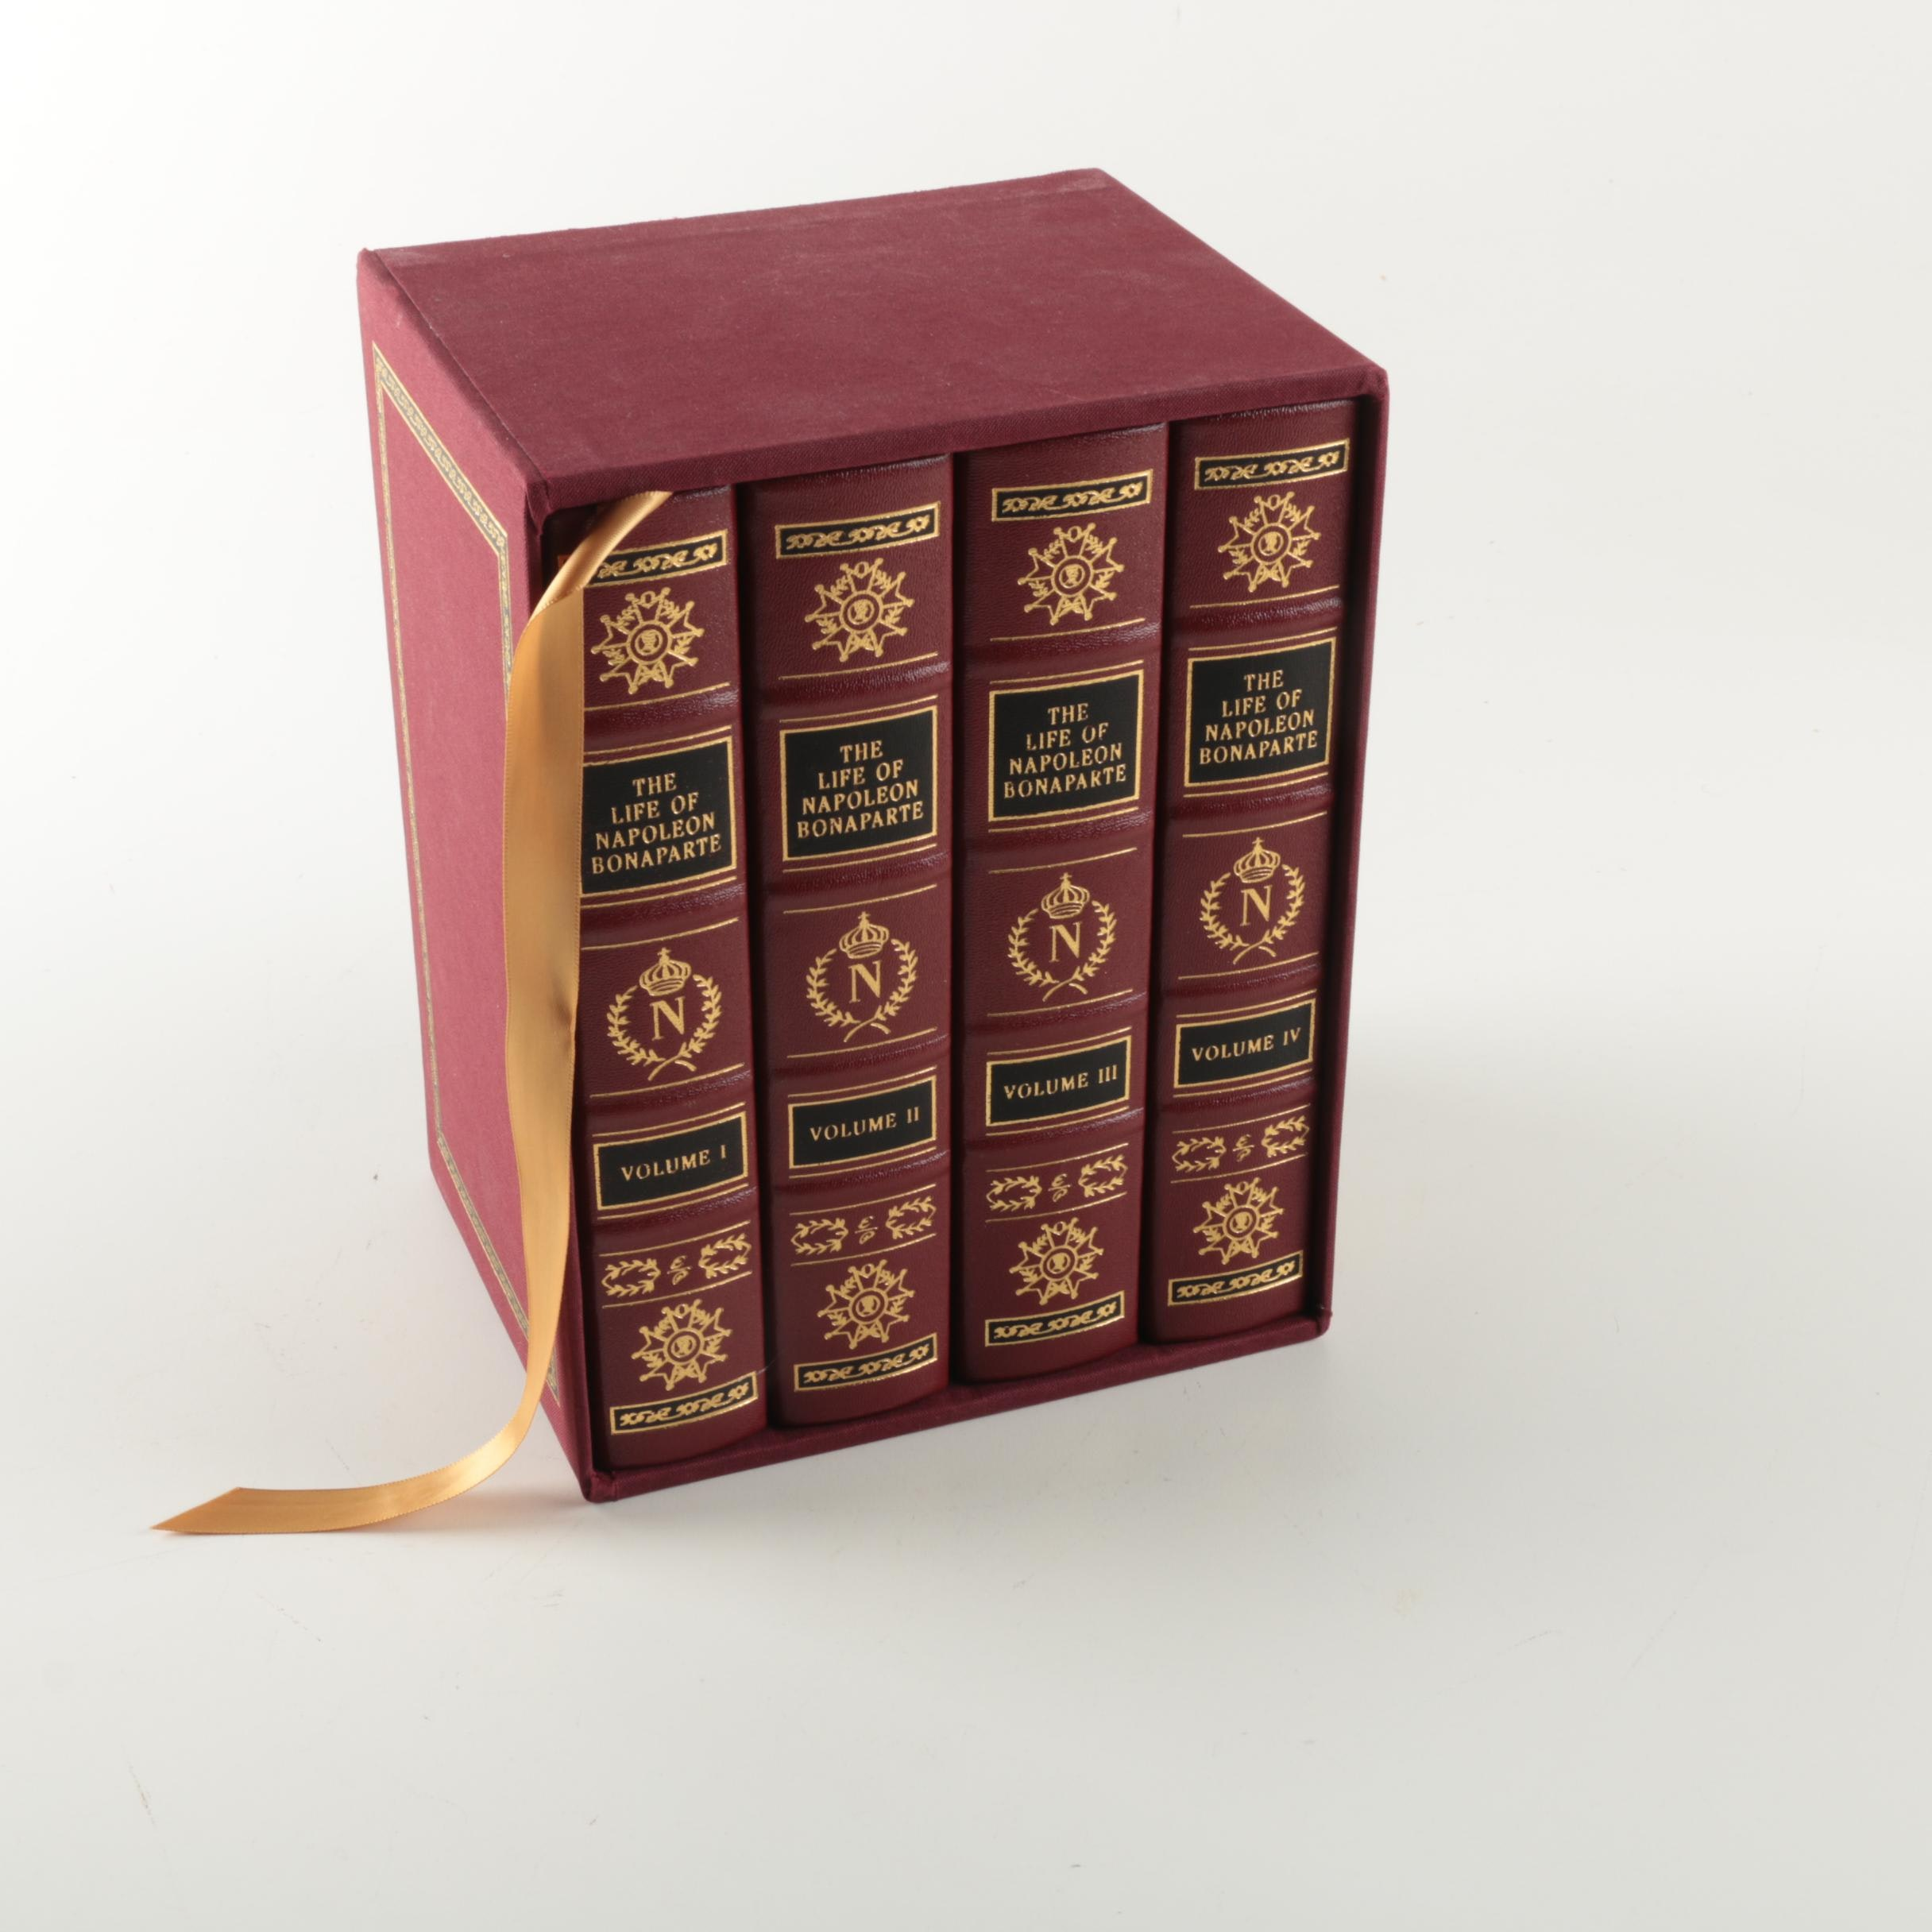 "2012 Easton Press Deluxe Limited Edition ""The Life of Napoleon Bonaparte"" Set"